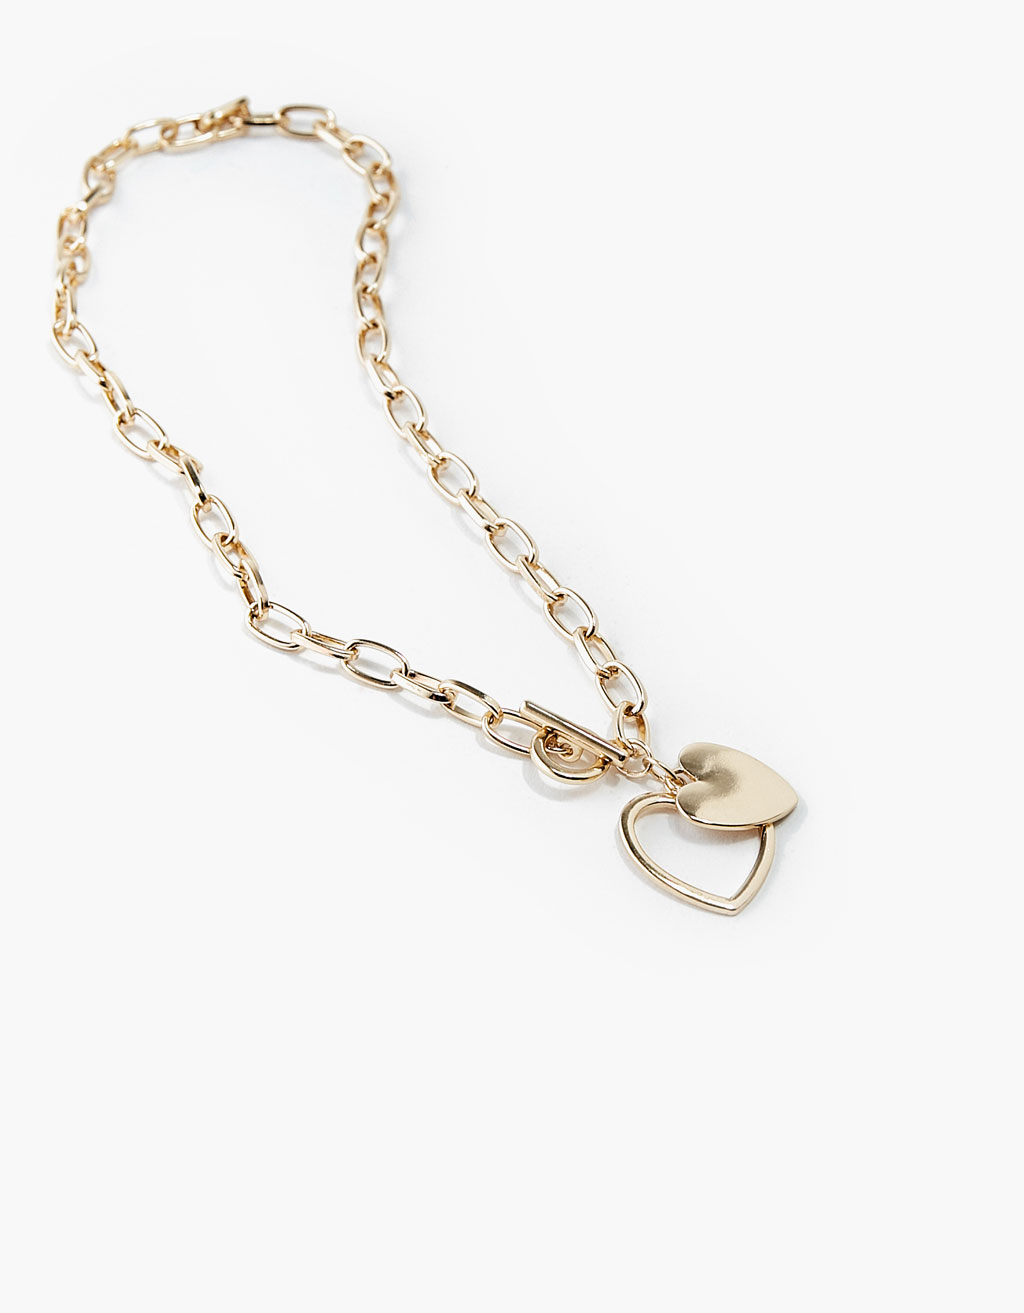 Heart and chain link necklace